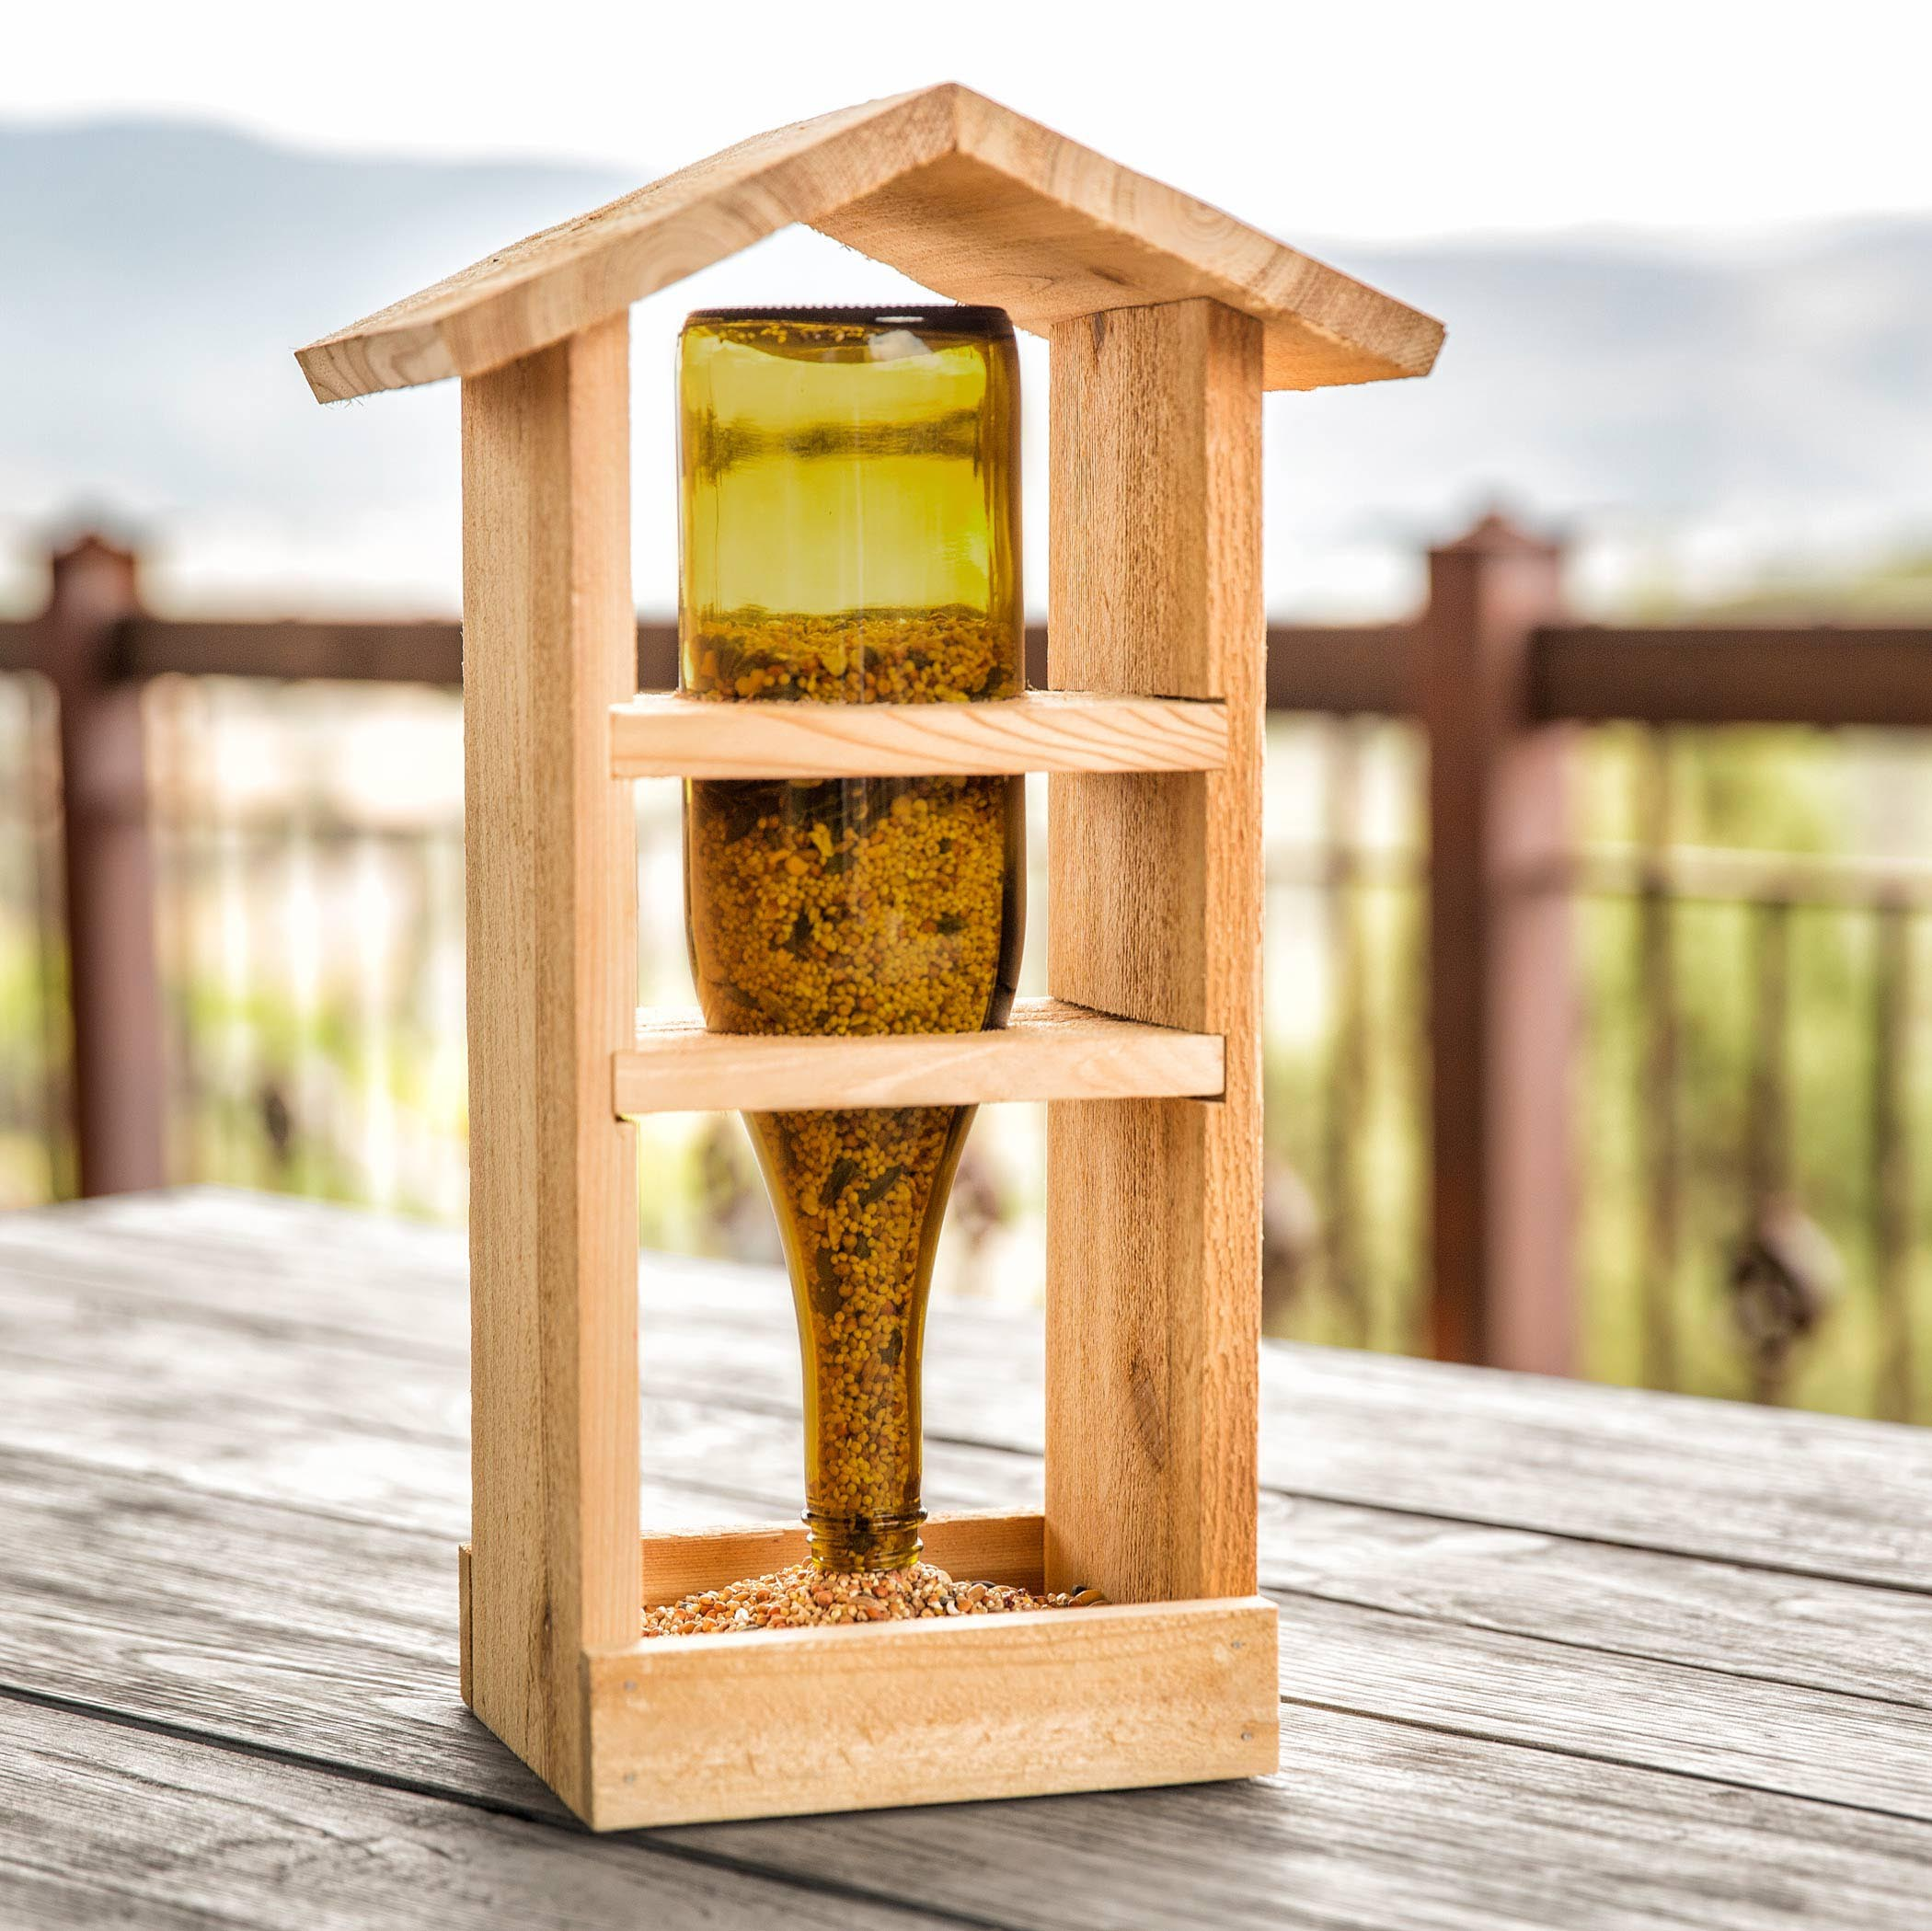 DIY Wooden Bird Feeders